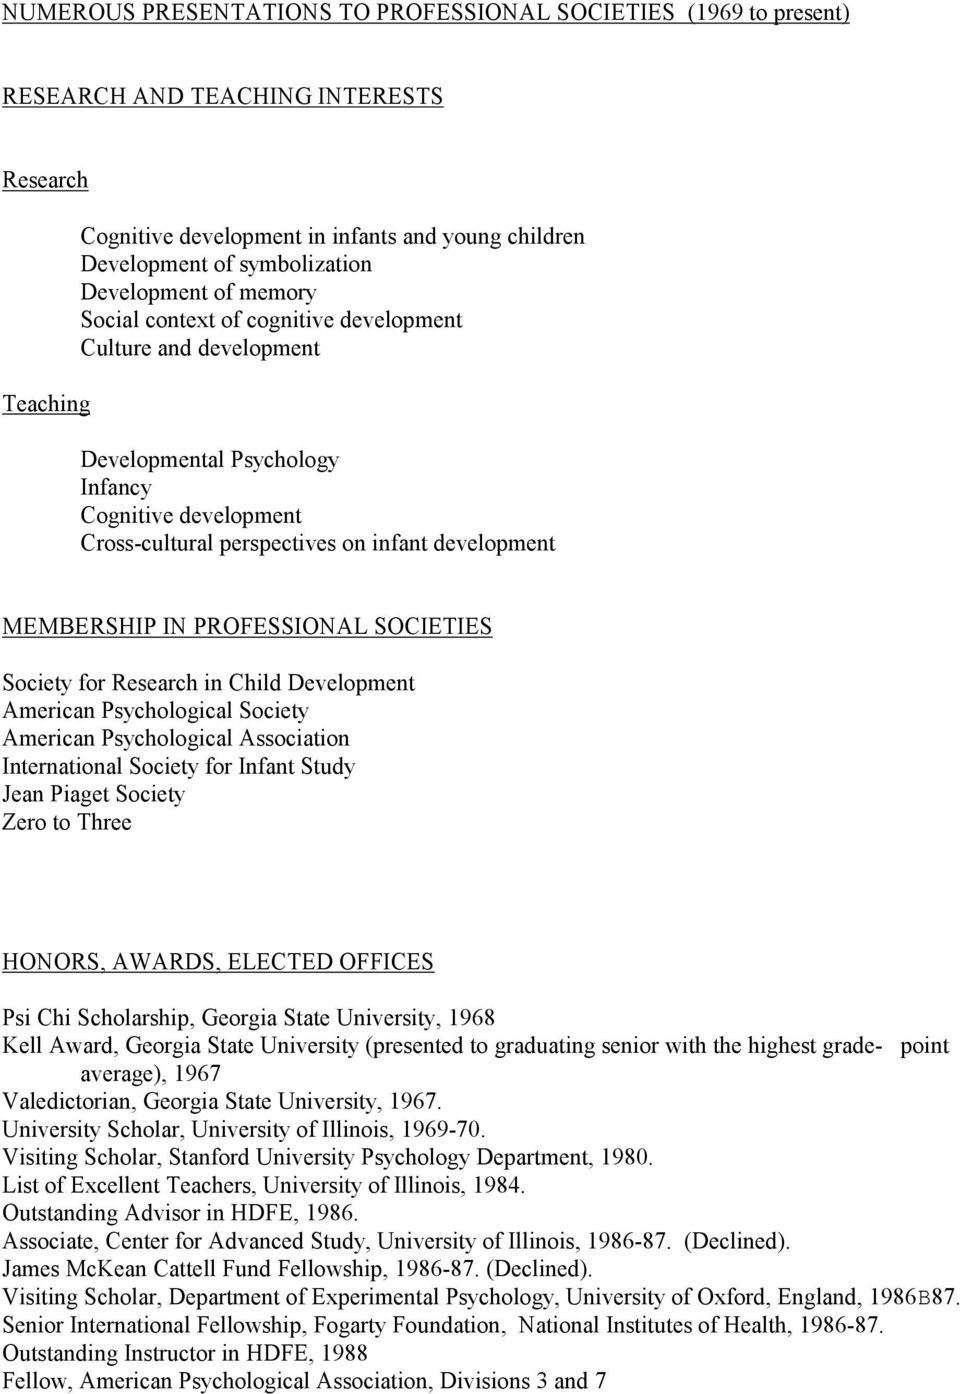 MEMBERSHIP IN PROFESSIONAL SOCIETIES Society for Research in Child Development American Psychological Society American Psychological Association International Society for Infant Study Jean Piaget